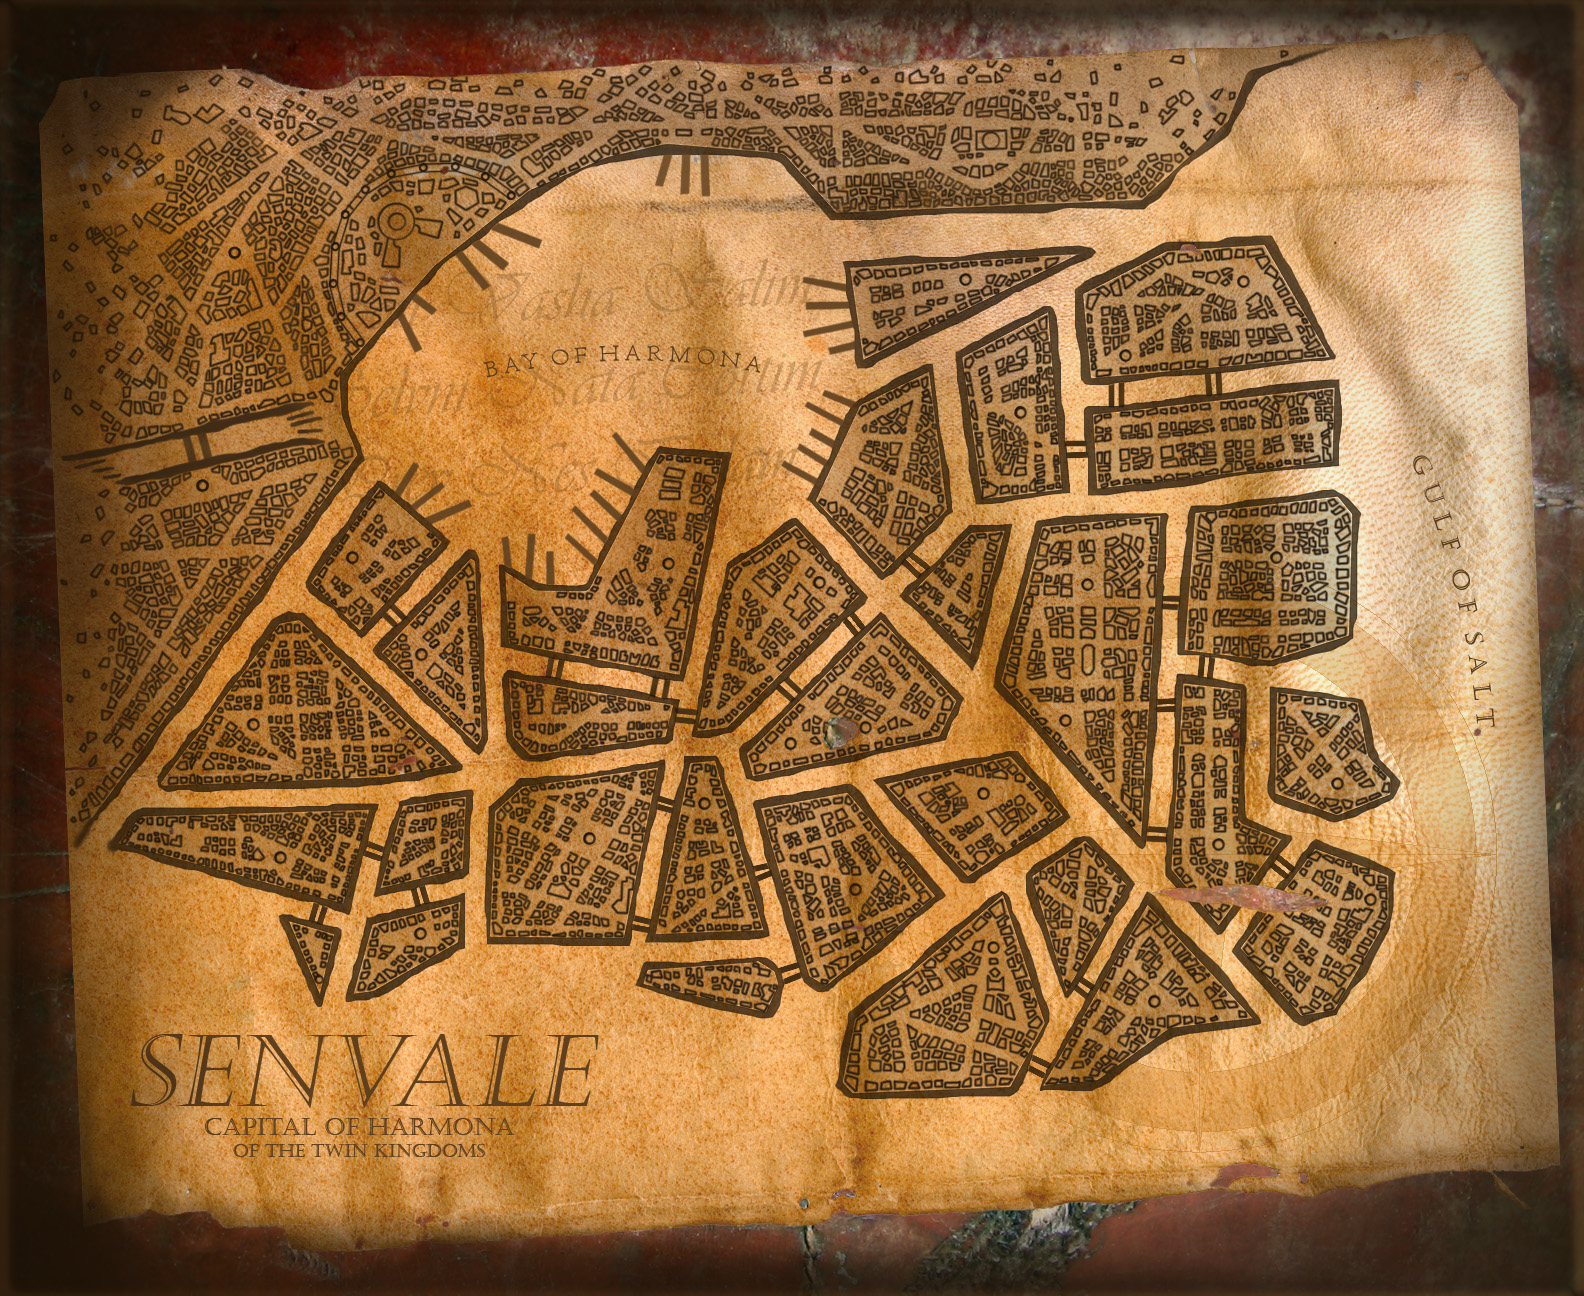 "SENVALE - Senvale is the capital city of the Kingdom of Harmona. Highly industrialized, with state of the art canals gridding the city regions and modernized conveniences around every turn. To understand the city you must understand Harmona's ruling body - six noble houses each owning a sixth of the country; sworn to civility yet all constantly vying for the title of ""royal house."" Reflecting this, the city is divided into smaller territories controlled by the various houses. Differences in aesthetic, culture and even law are noticeable on just a short steamferry ride through the city."